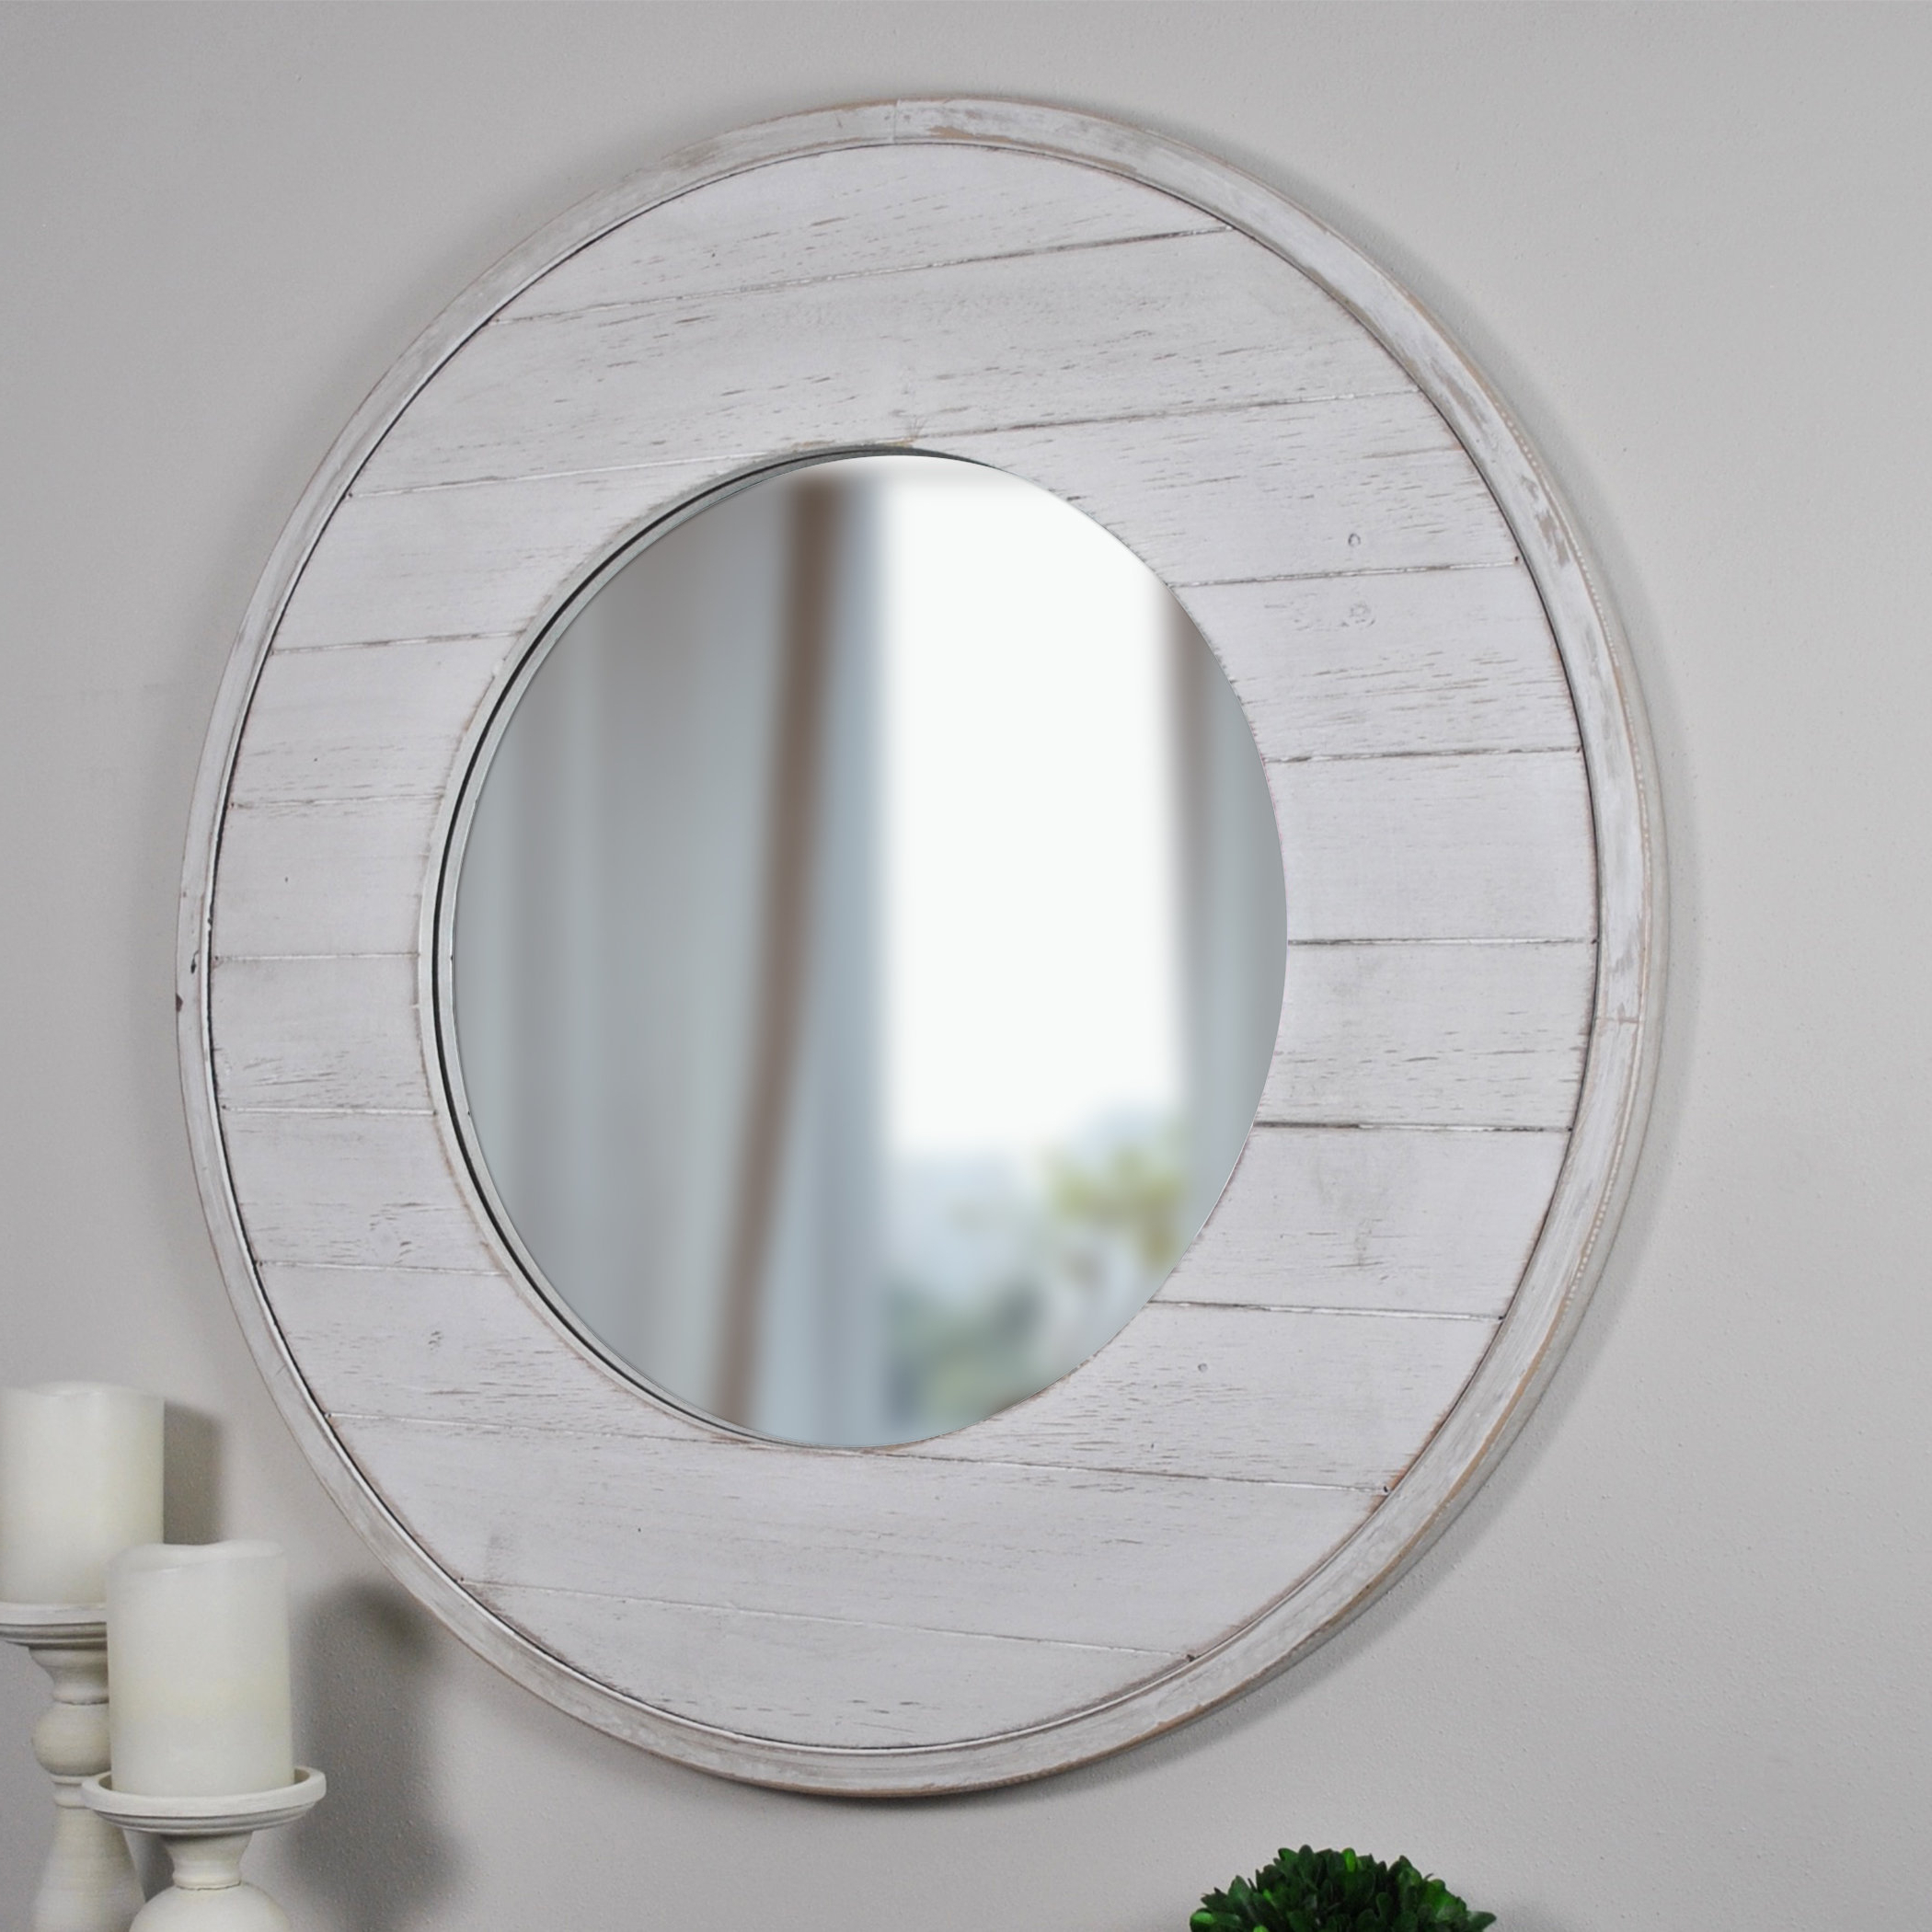 Andrade Shiplap Coastal Distressed Accent Mirror Inside 2020 Gaunts Earthcott Wall Mirrors (View 10 of 20)